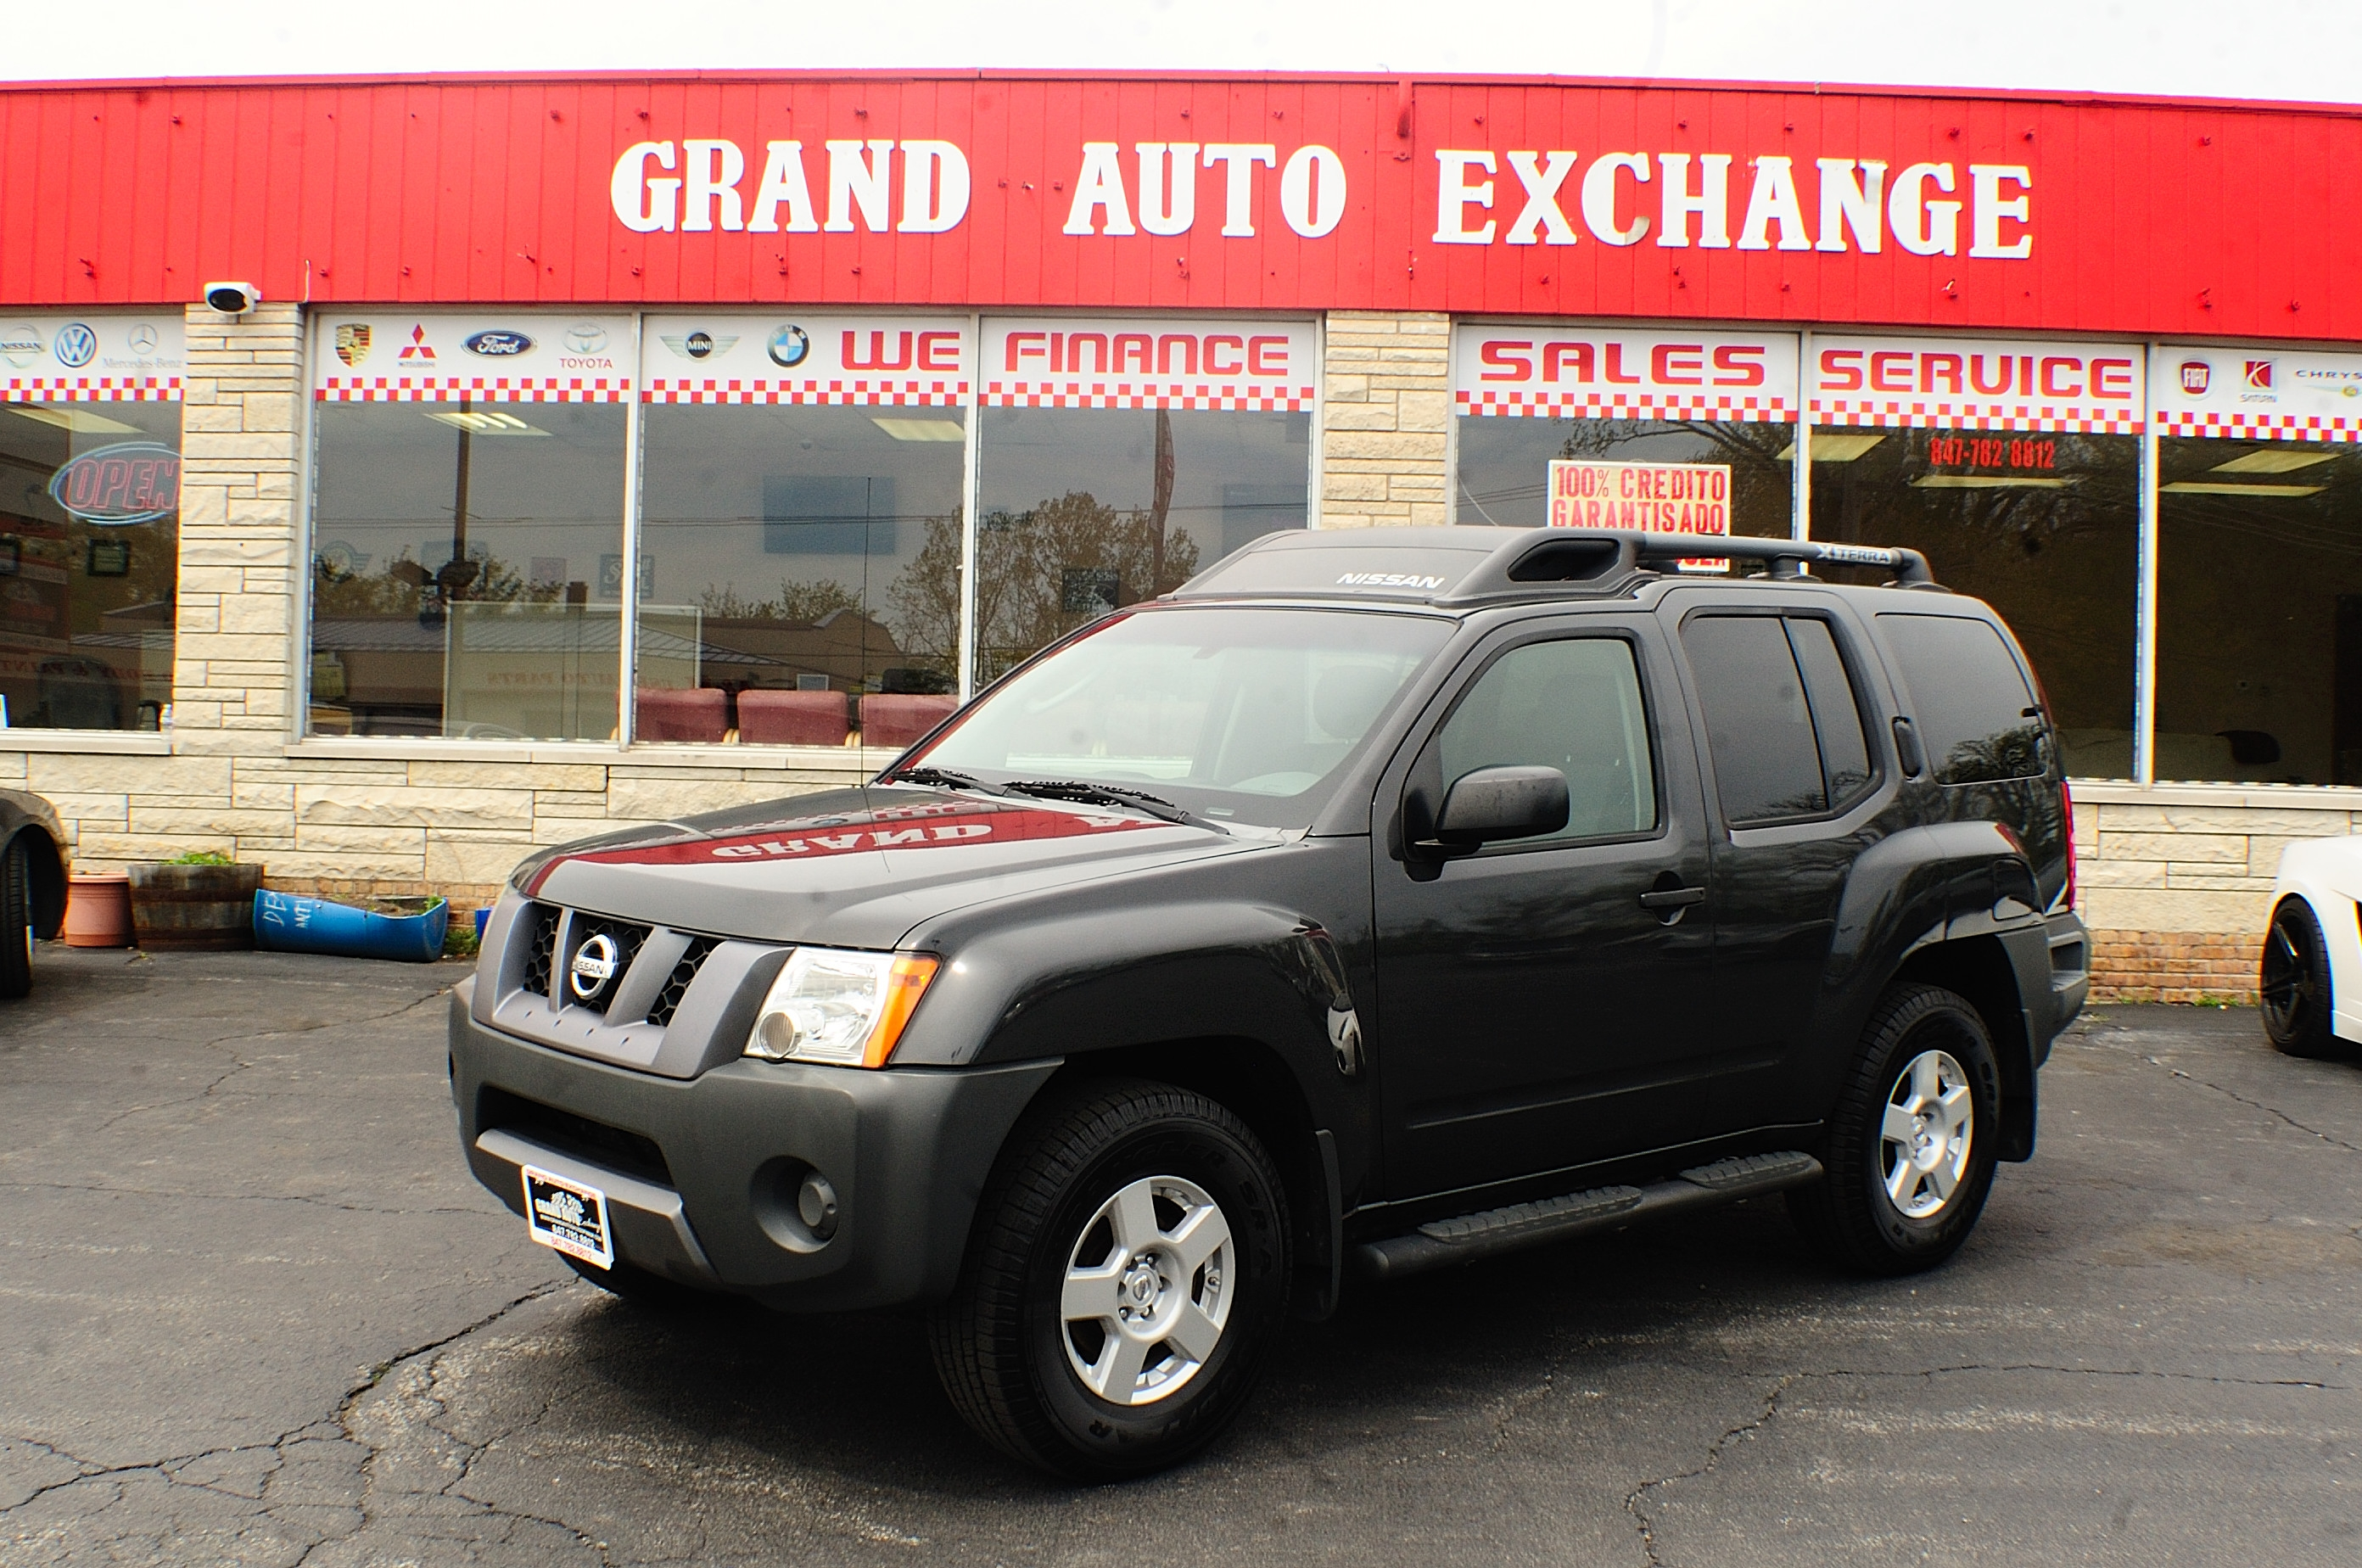 2008 Nissan Xterra Gray Used 4x4 Used SUV Sale Antioch Zion Waukegan Lake County Illinois